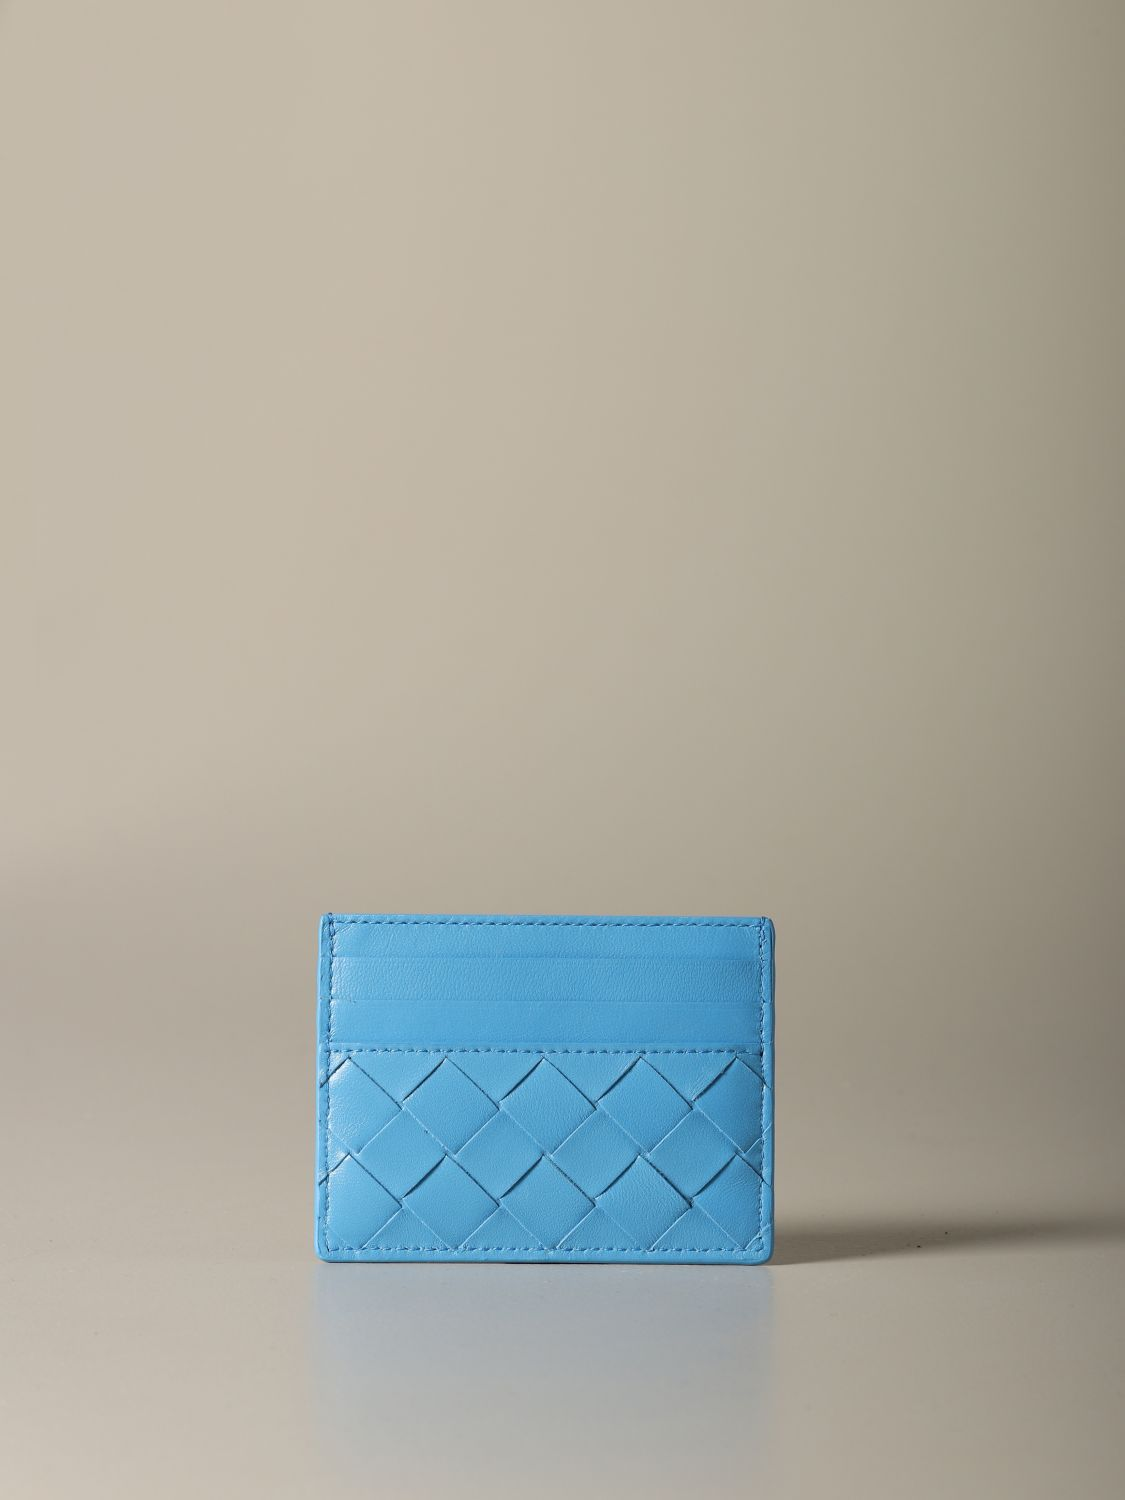 Wallet Bottega Veneta: Wallet women Bottega Veneta gnawed blue 1